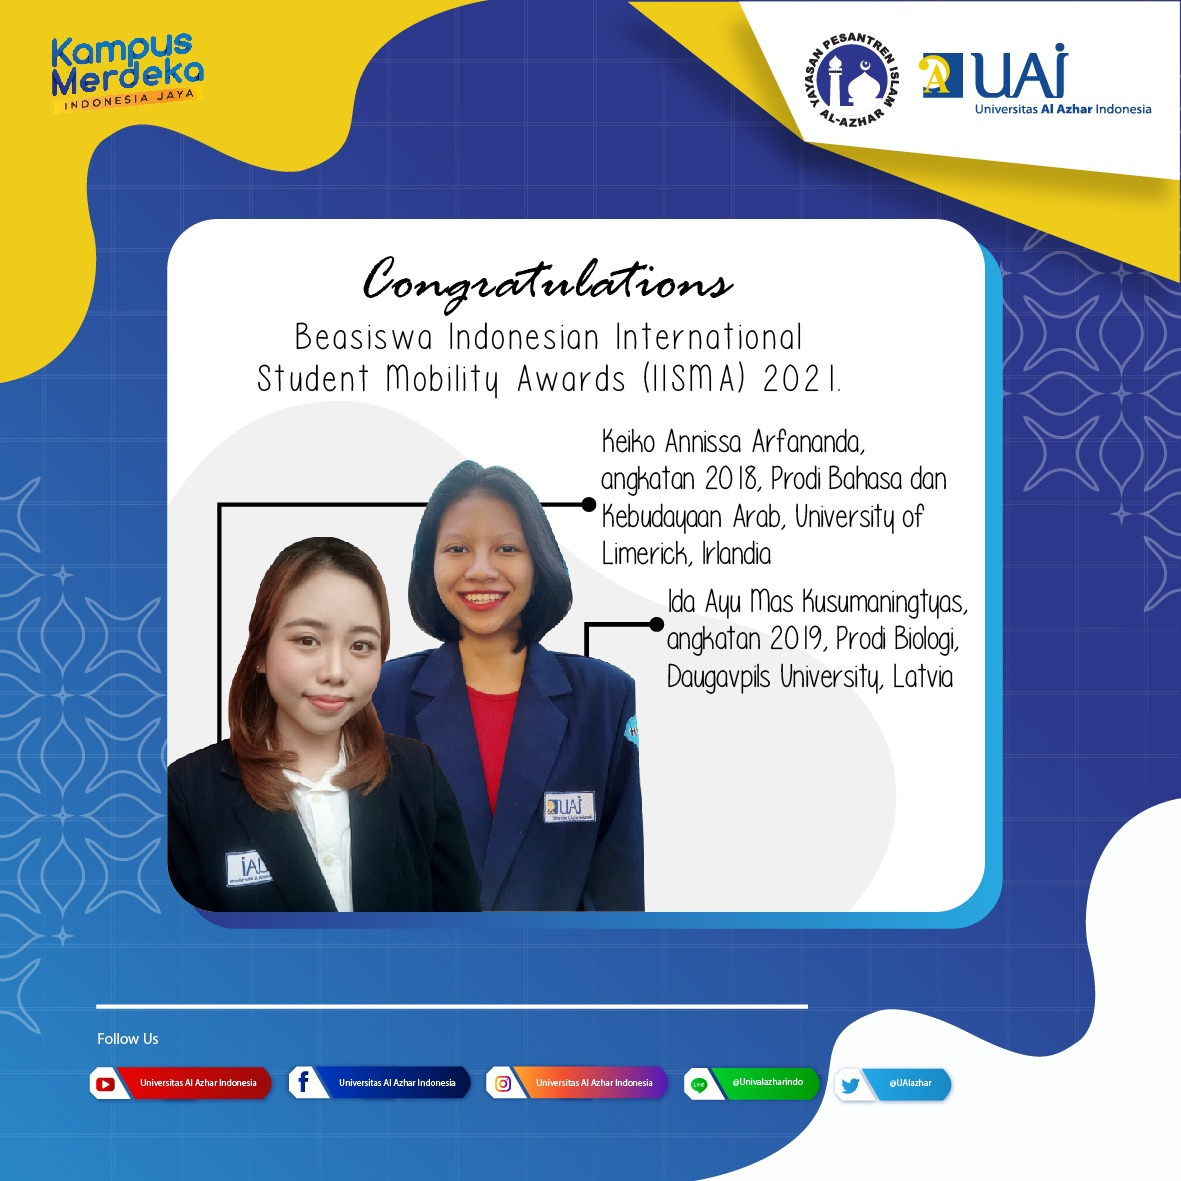 From 2000 Indonesia Applicants, 2 UAI Students Achieve IISMA 2021 Scholarships To Study Abroad In Prominent Universities